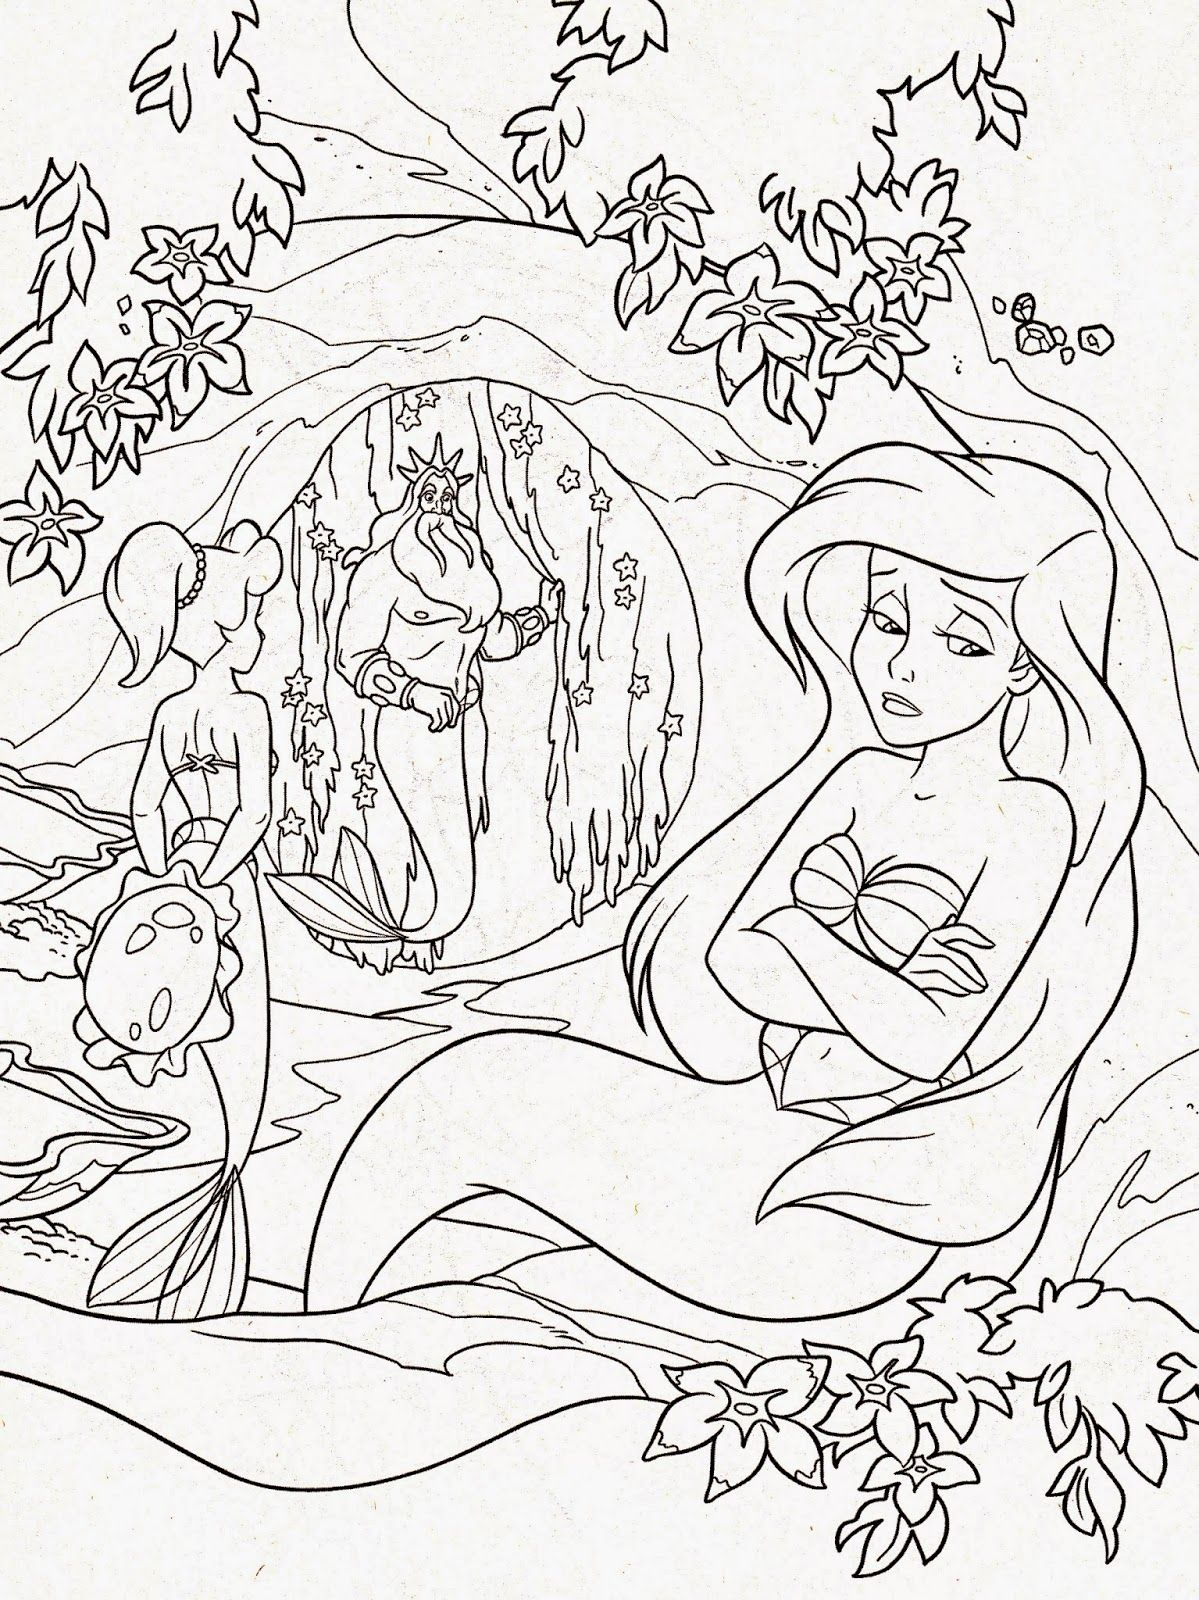 Hard Coloring Pages Of Mermaids Ariel Coloring Pages Princess Coloring Pages Disney Princess Coloring Pages